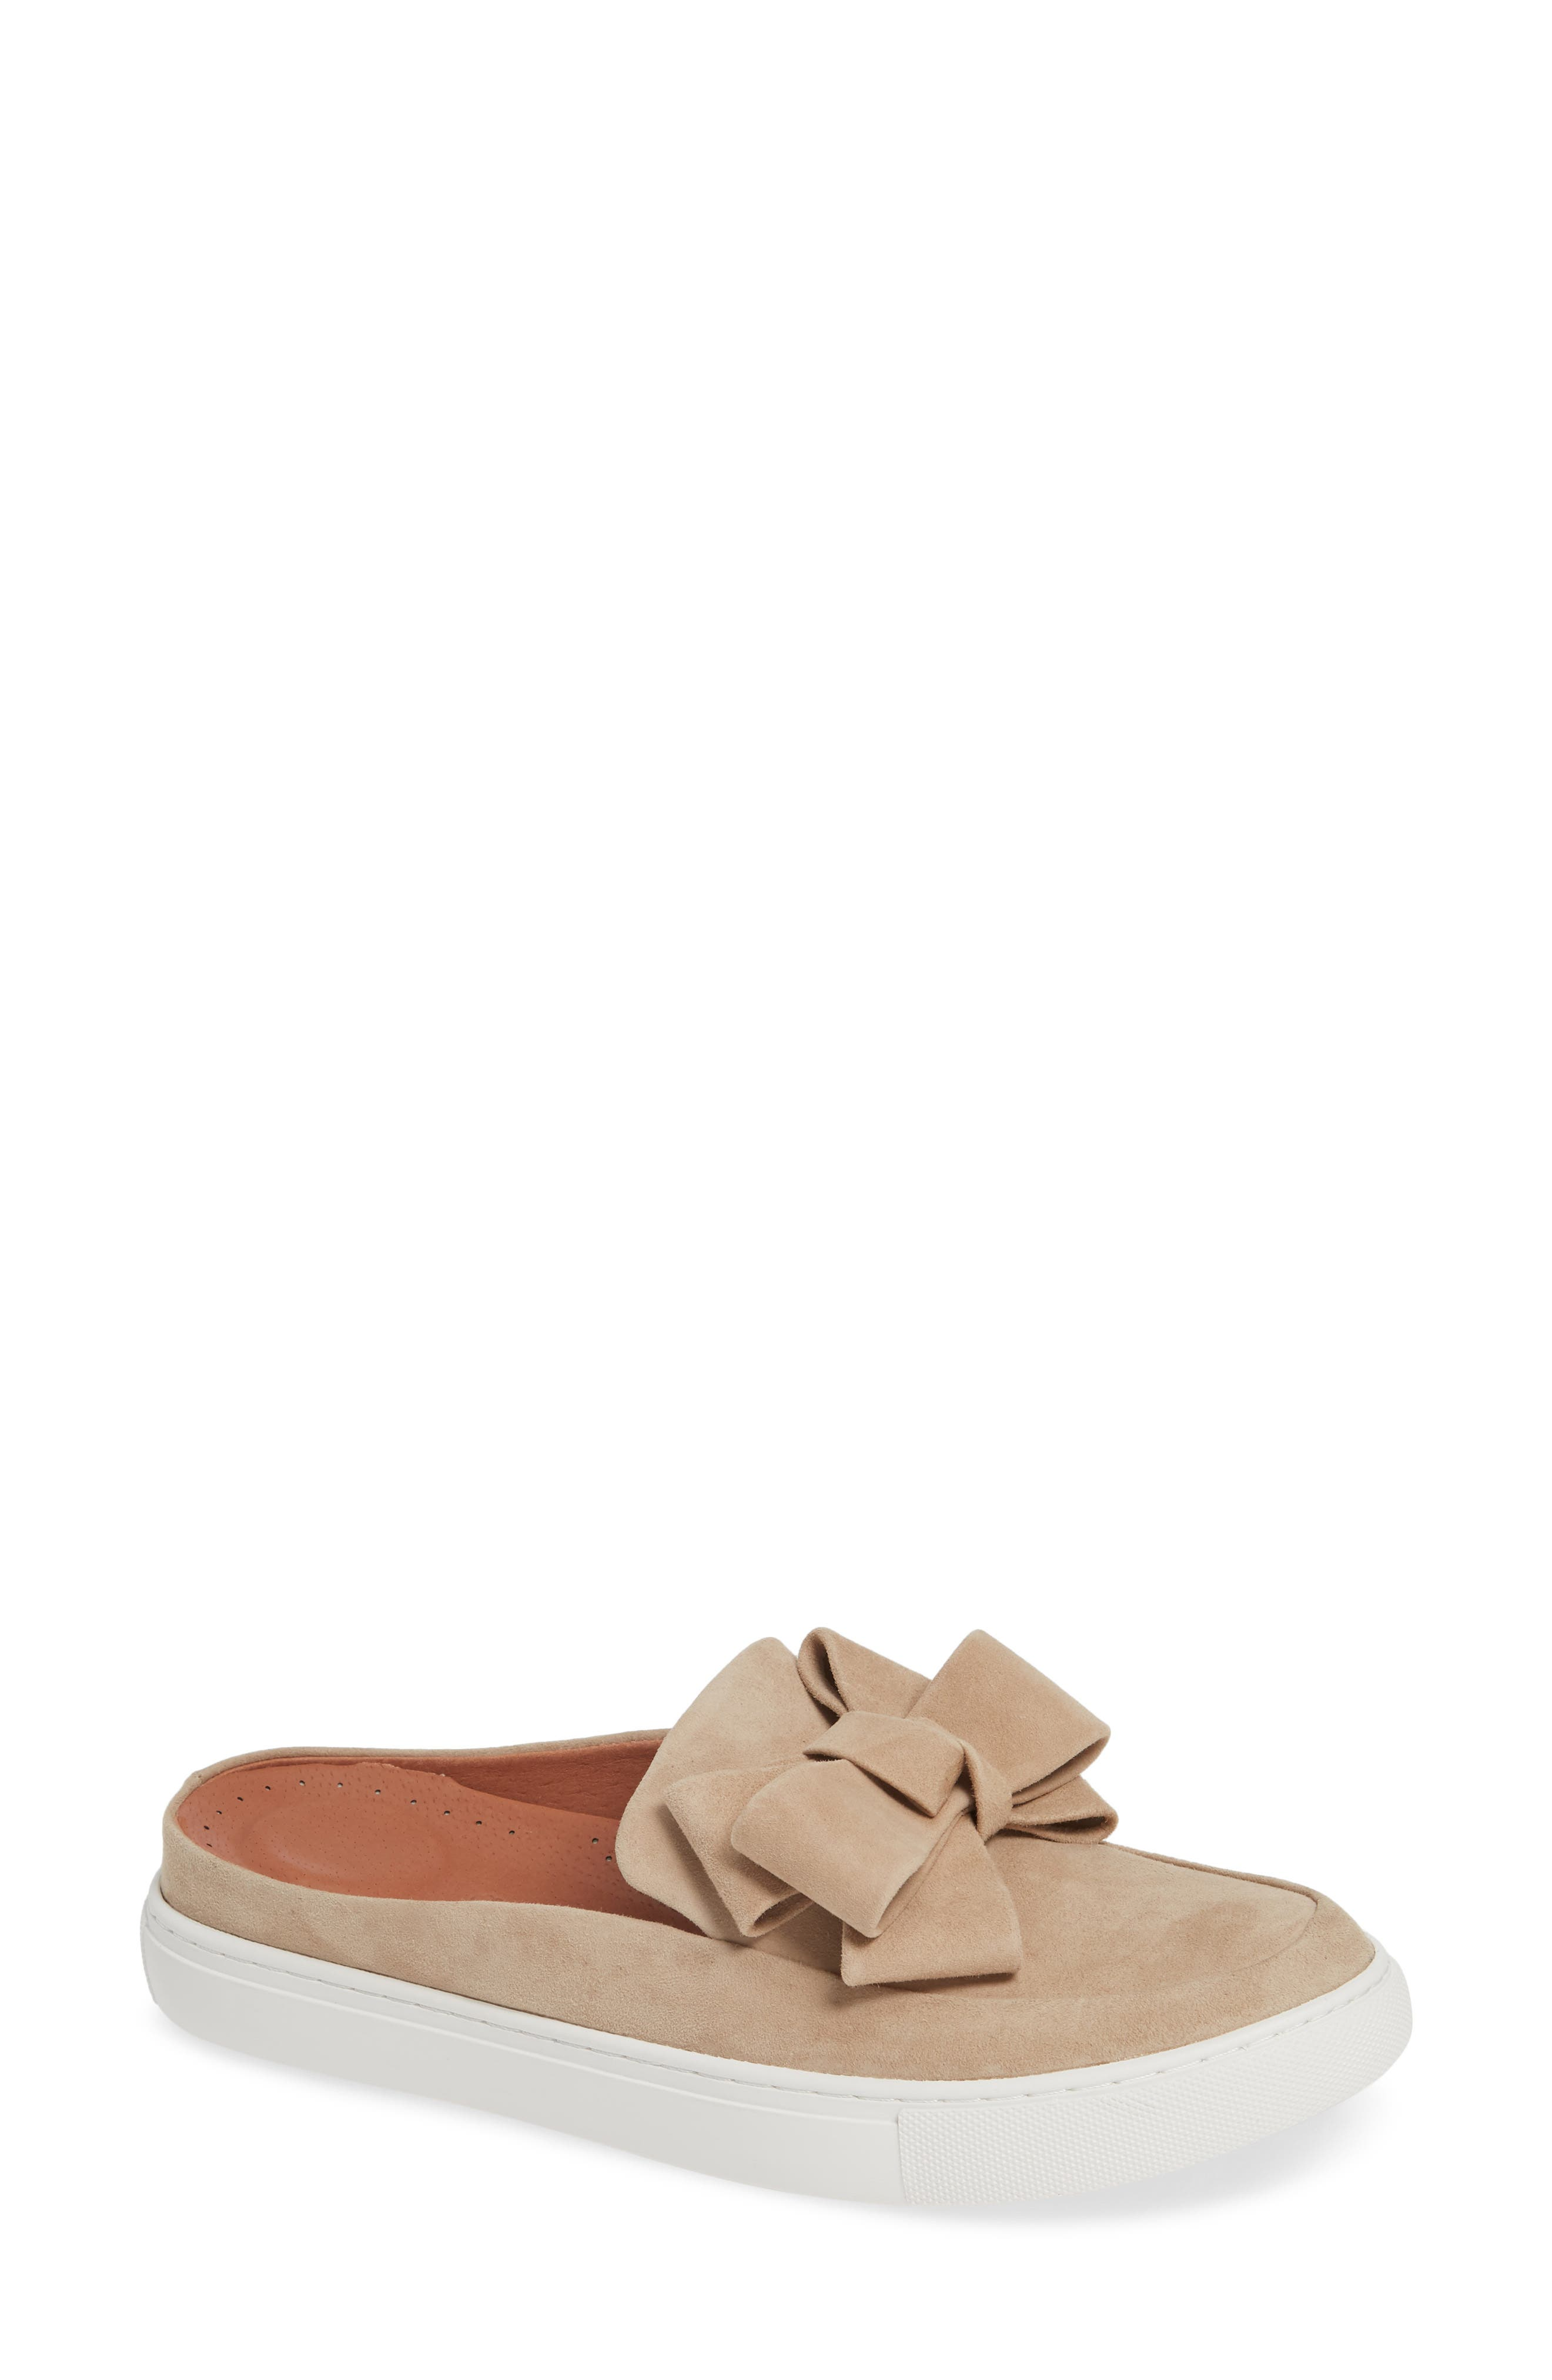 GENTLE SOULS BY KENNETH COLE, Rory Bow Mule, Main thumbnail 1, color, 233